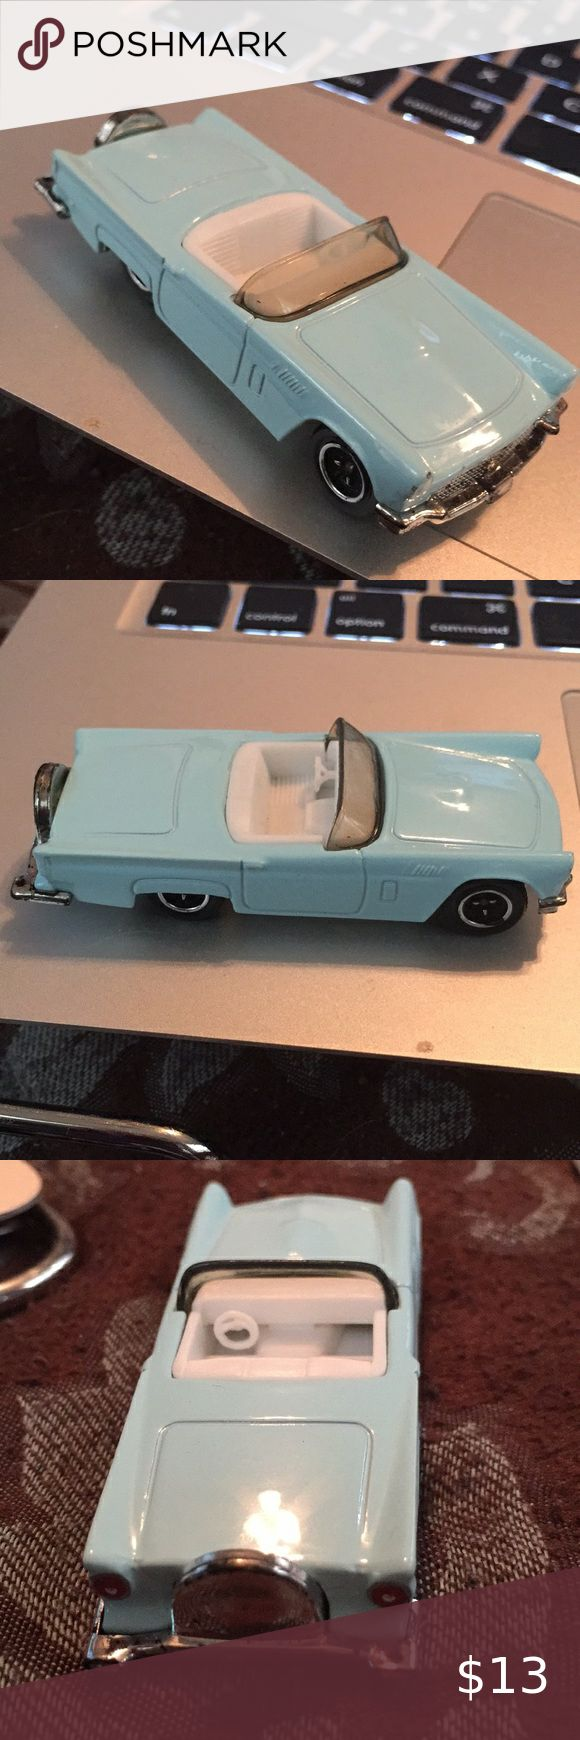 1988 Thailand Matchbox thunderbird car Toy in 2020